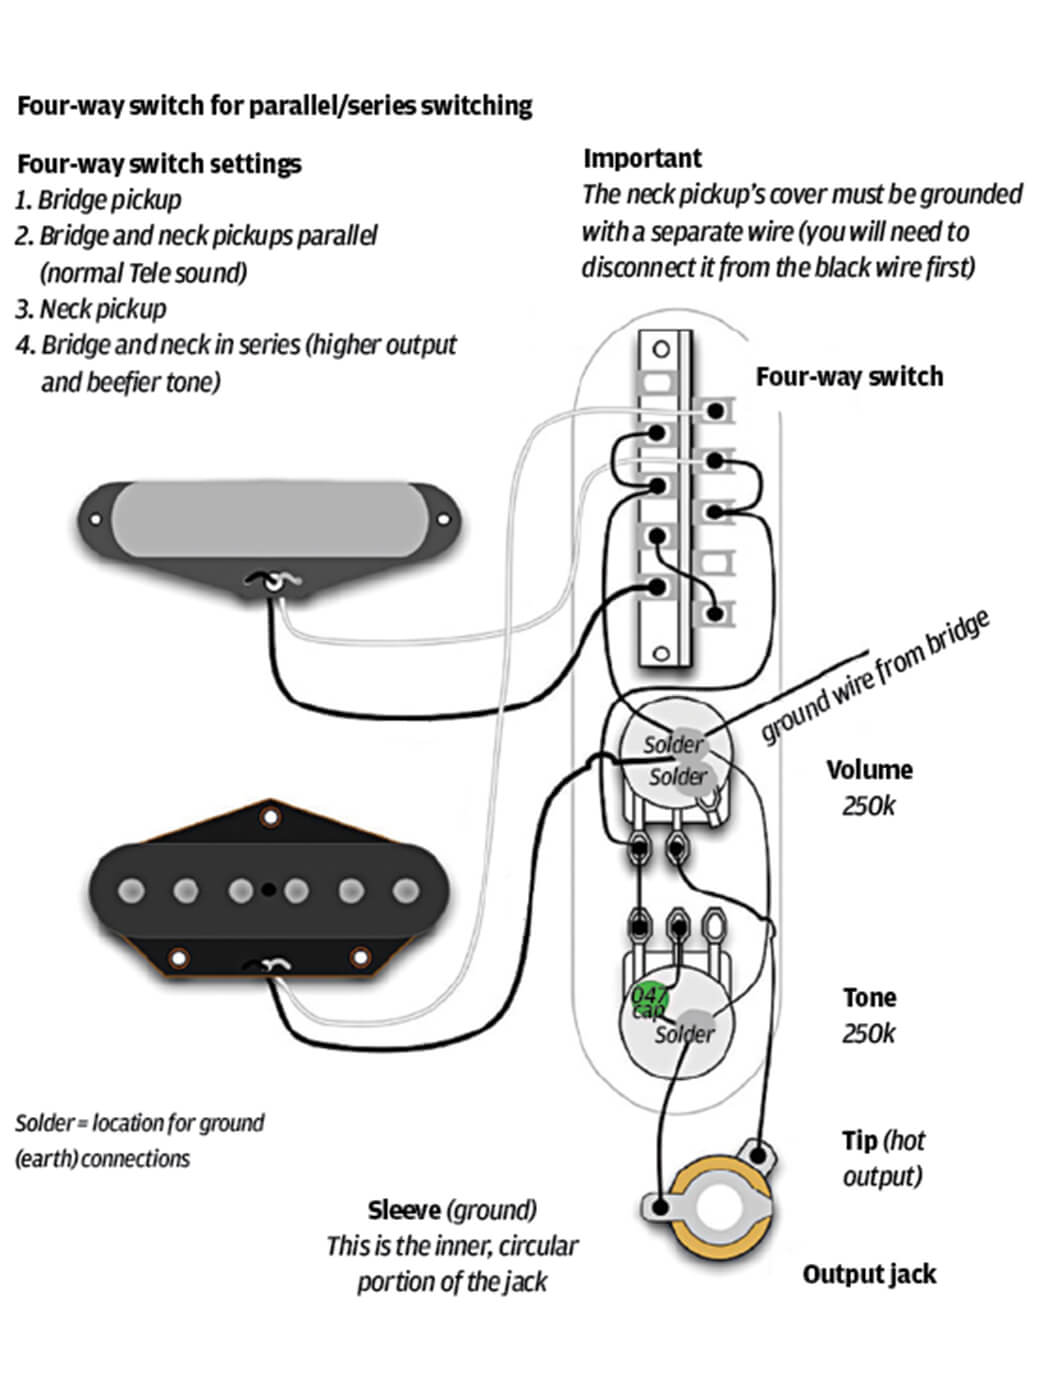 4 Way Switch Reverse Telecaster Wiring Diagram Seymour Duncan from guitar.com